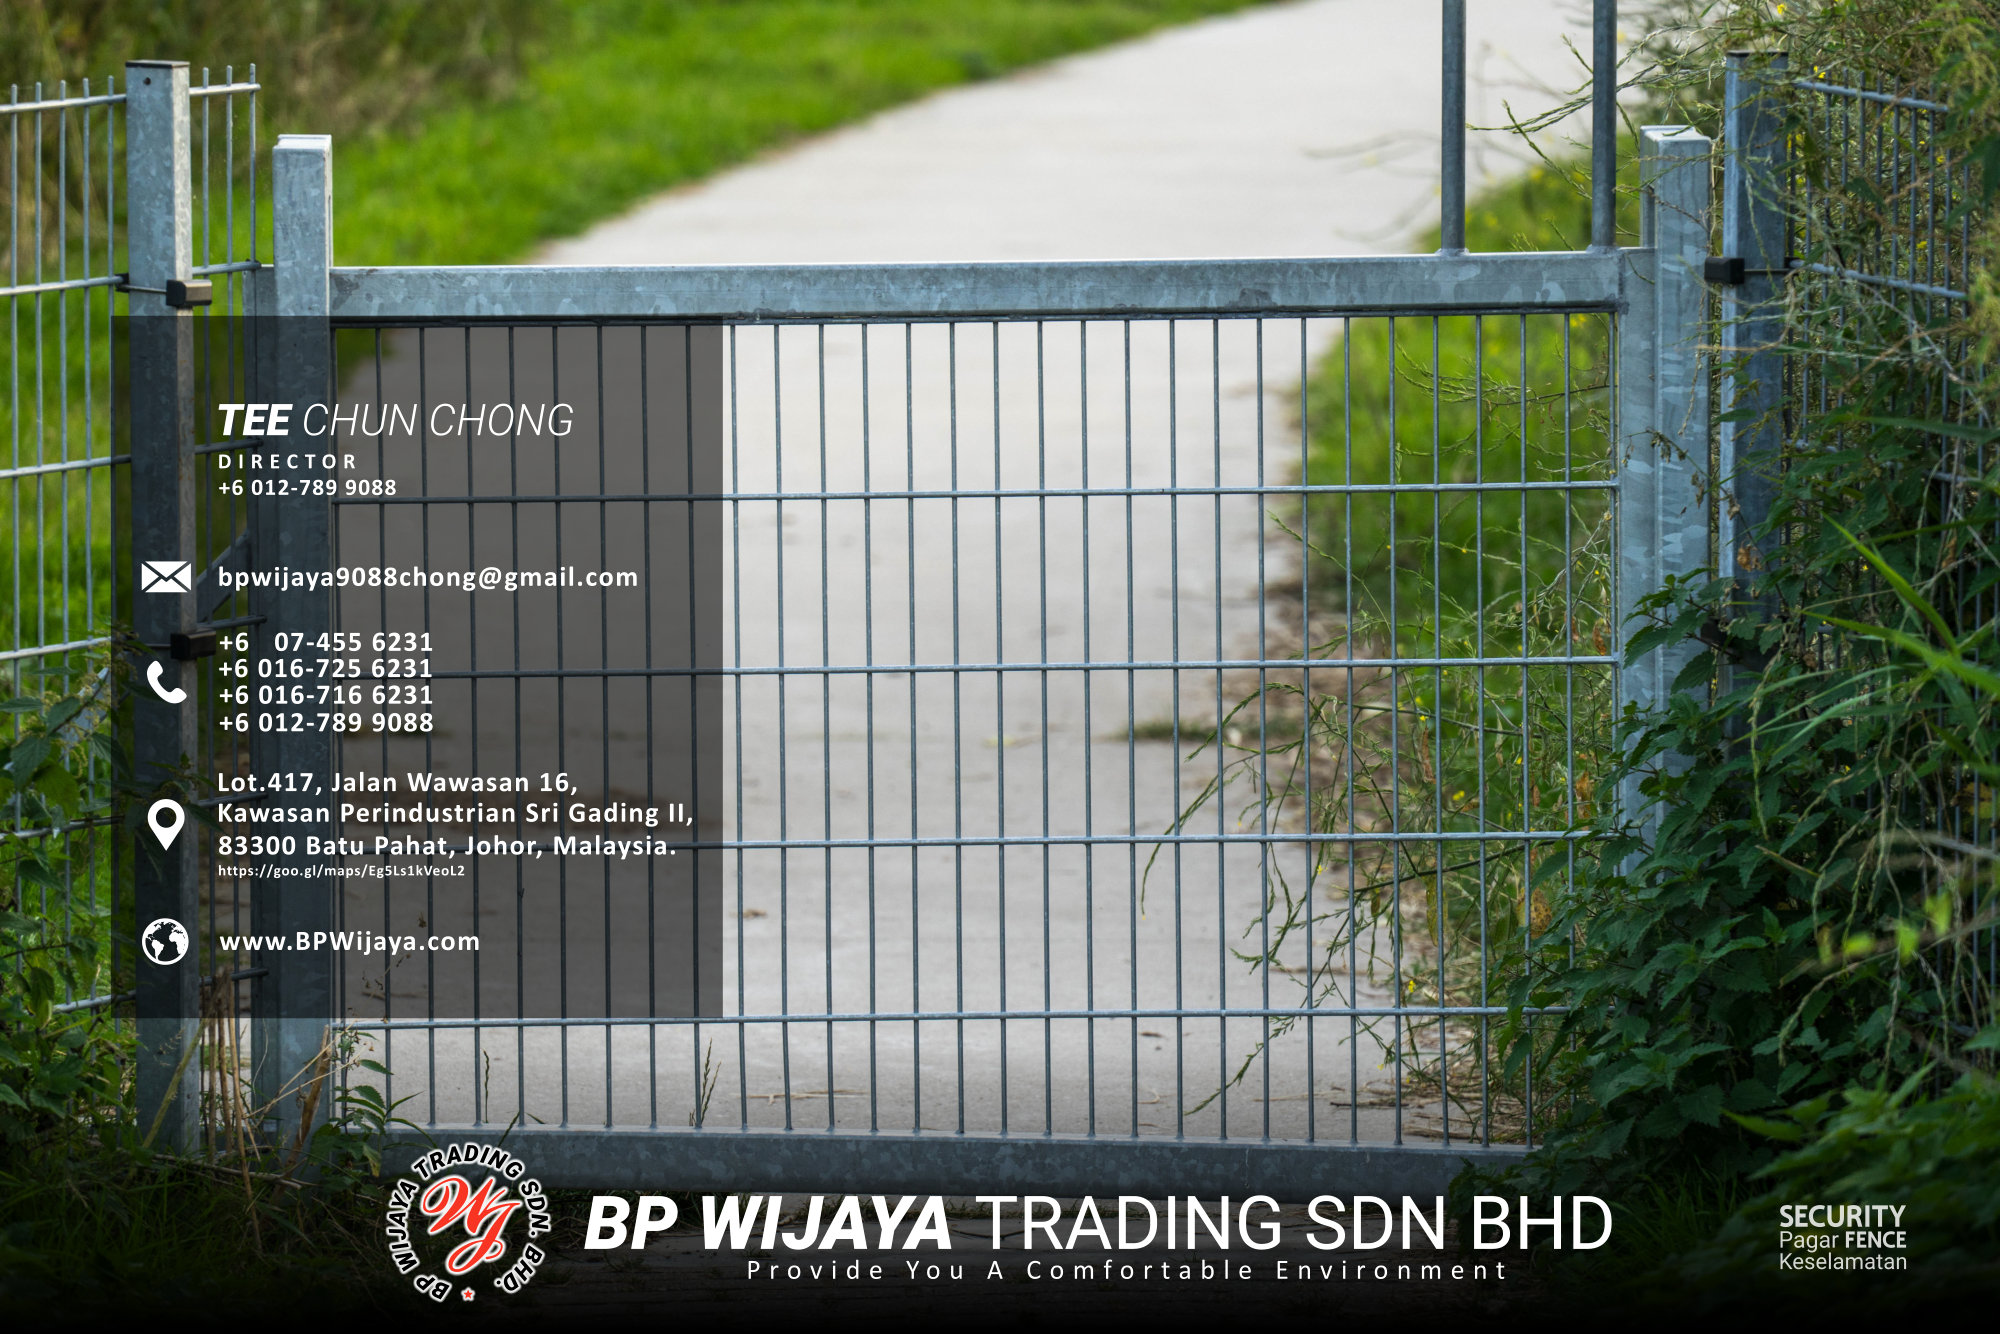 Kuala Lumpur Security Fence Supply we are manufacturer of security fence BP Wijaya Trading Sdn Bhd Safety Fence Building Materials for Housing Construction factory fence house beauty fence A03-017